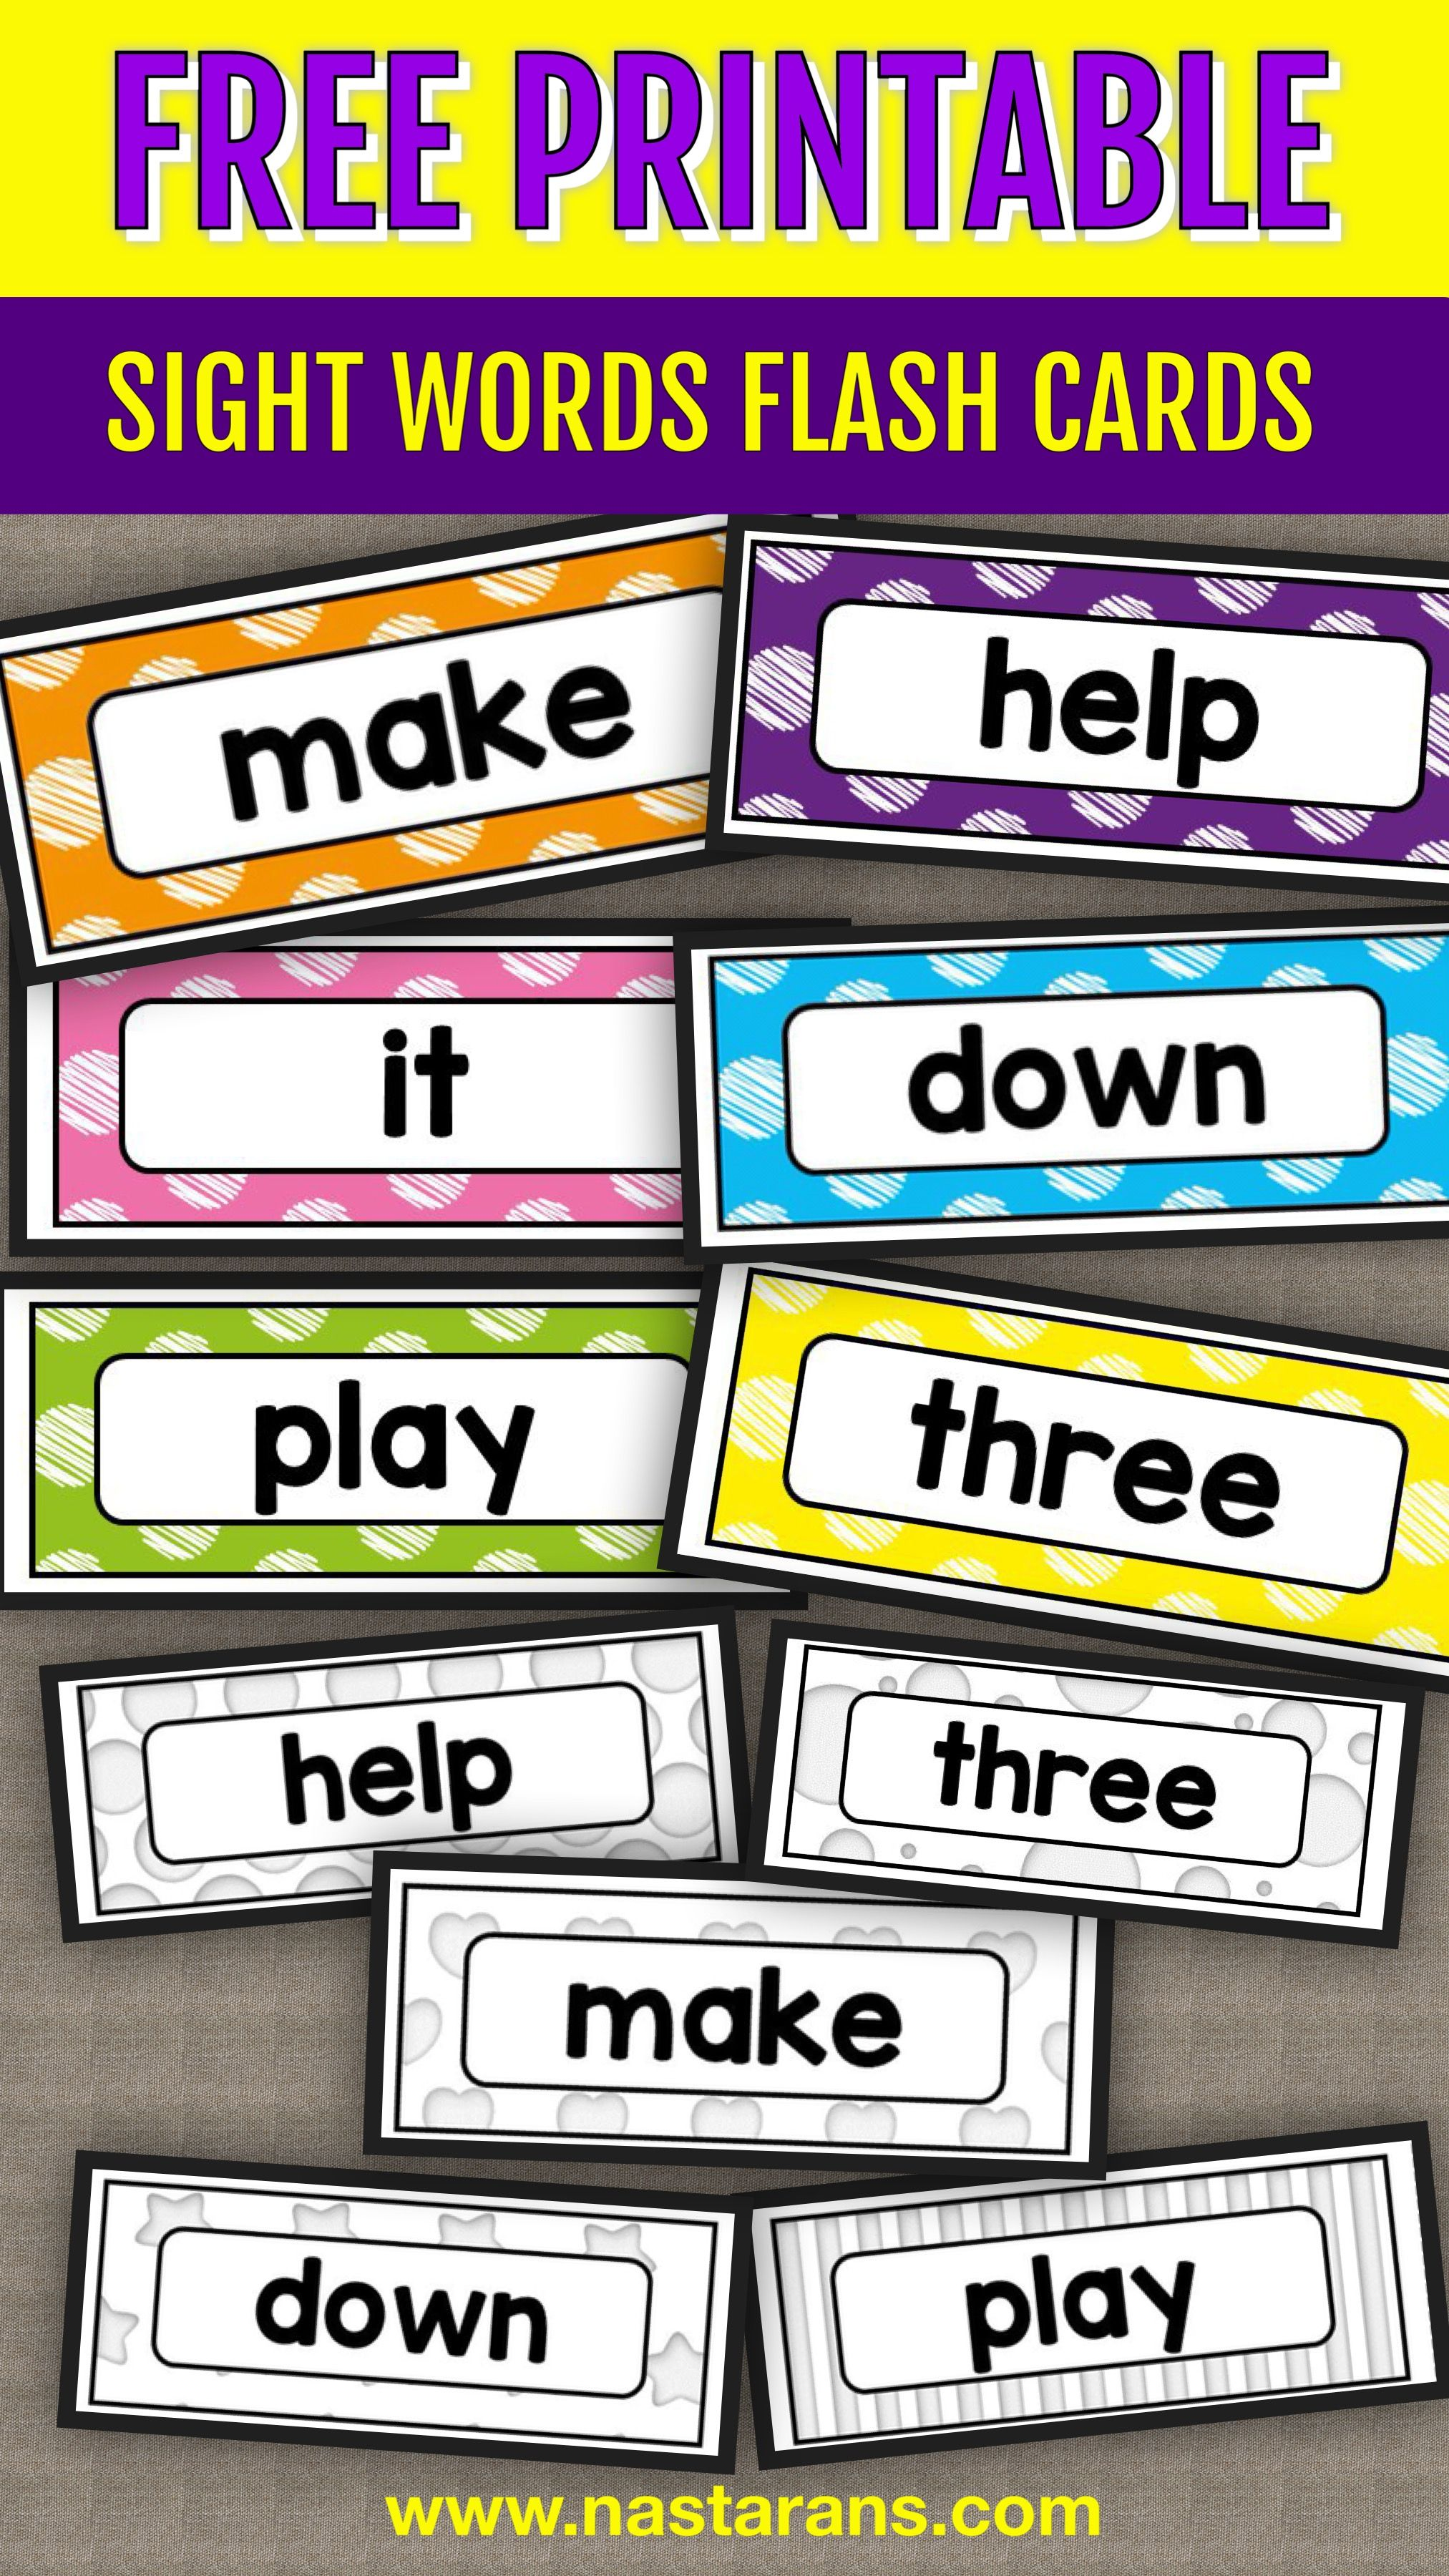 Free Printable Sight Words Flash Cards